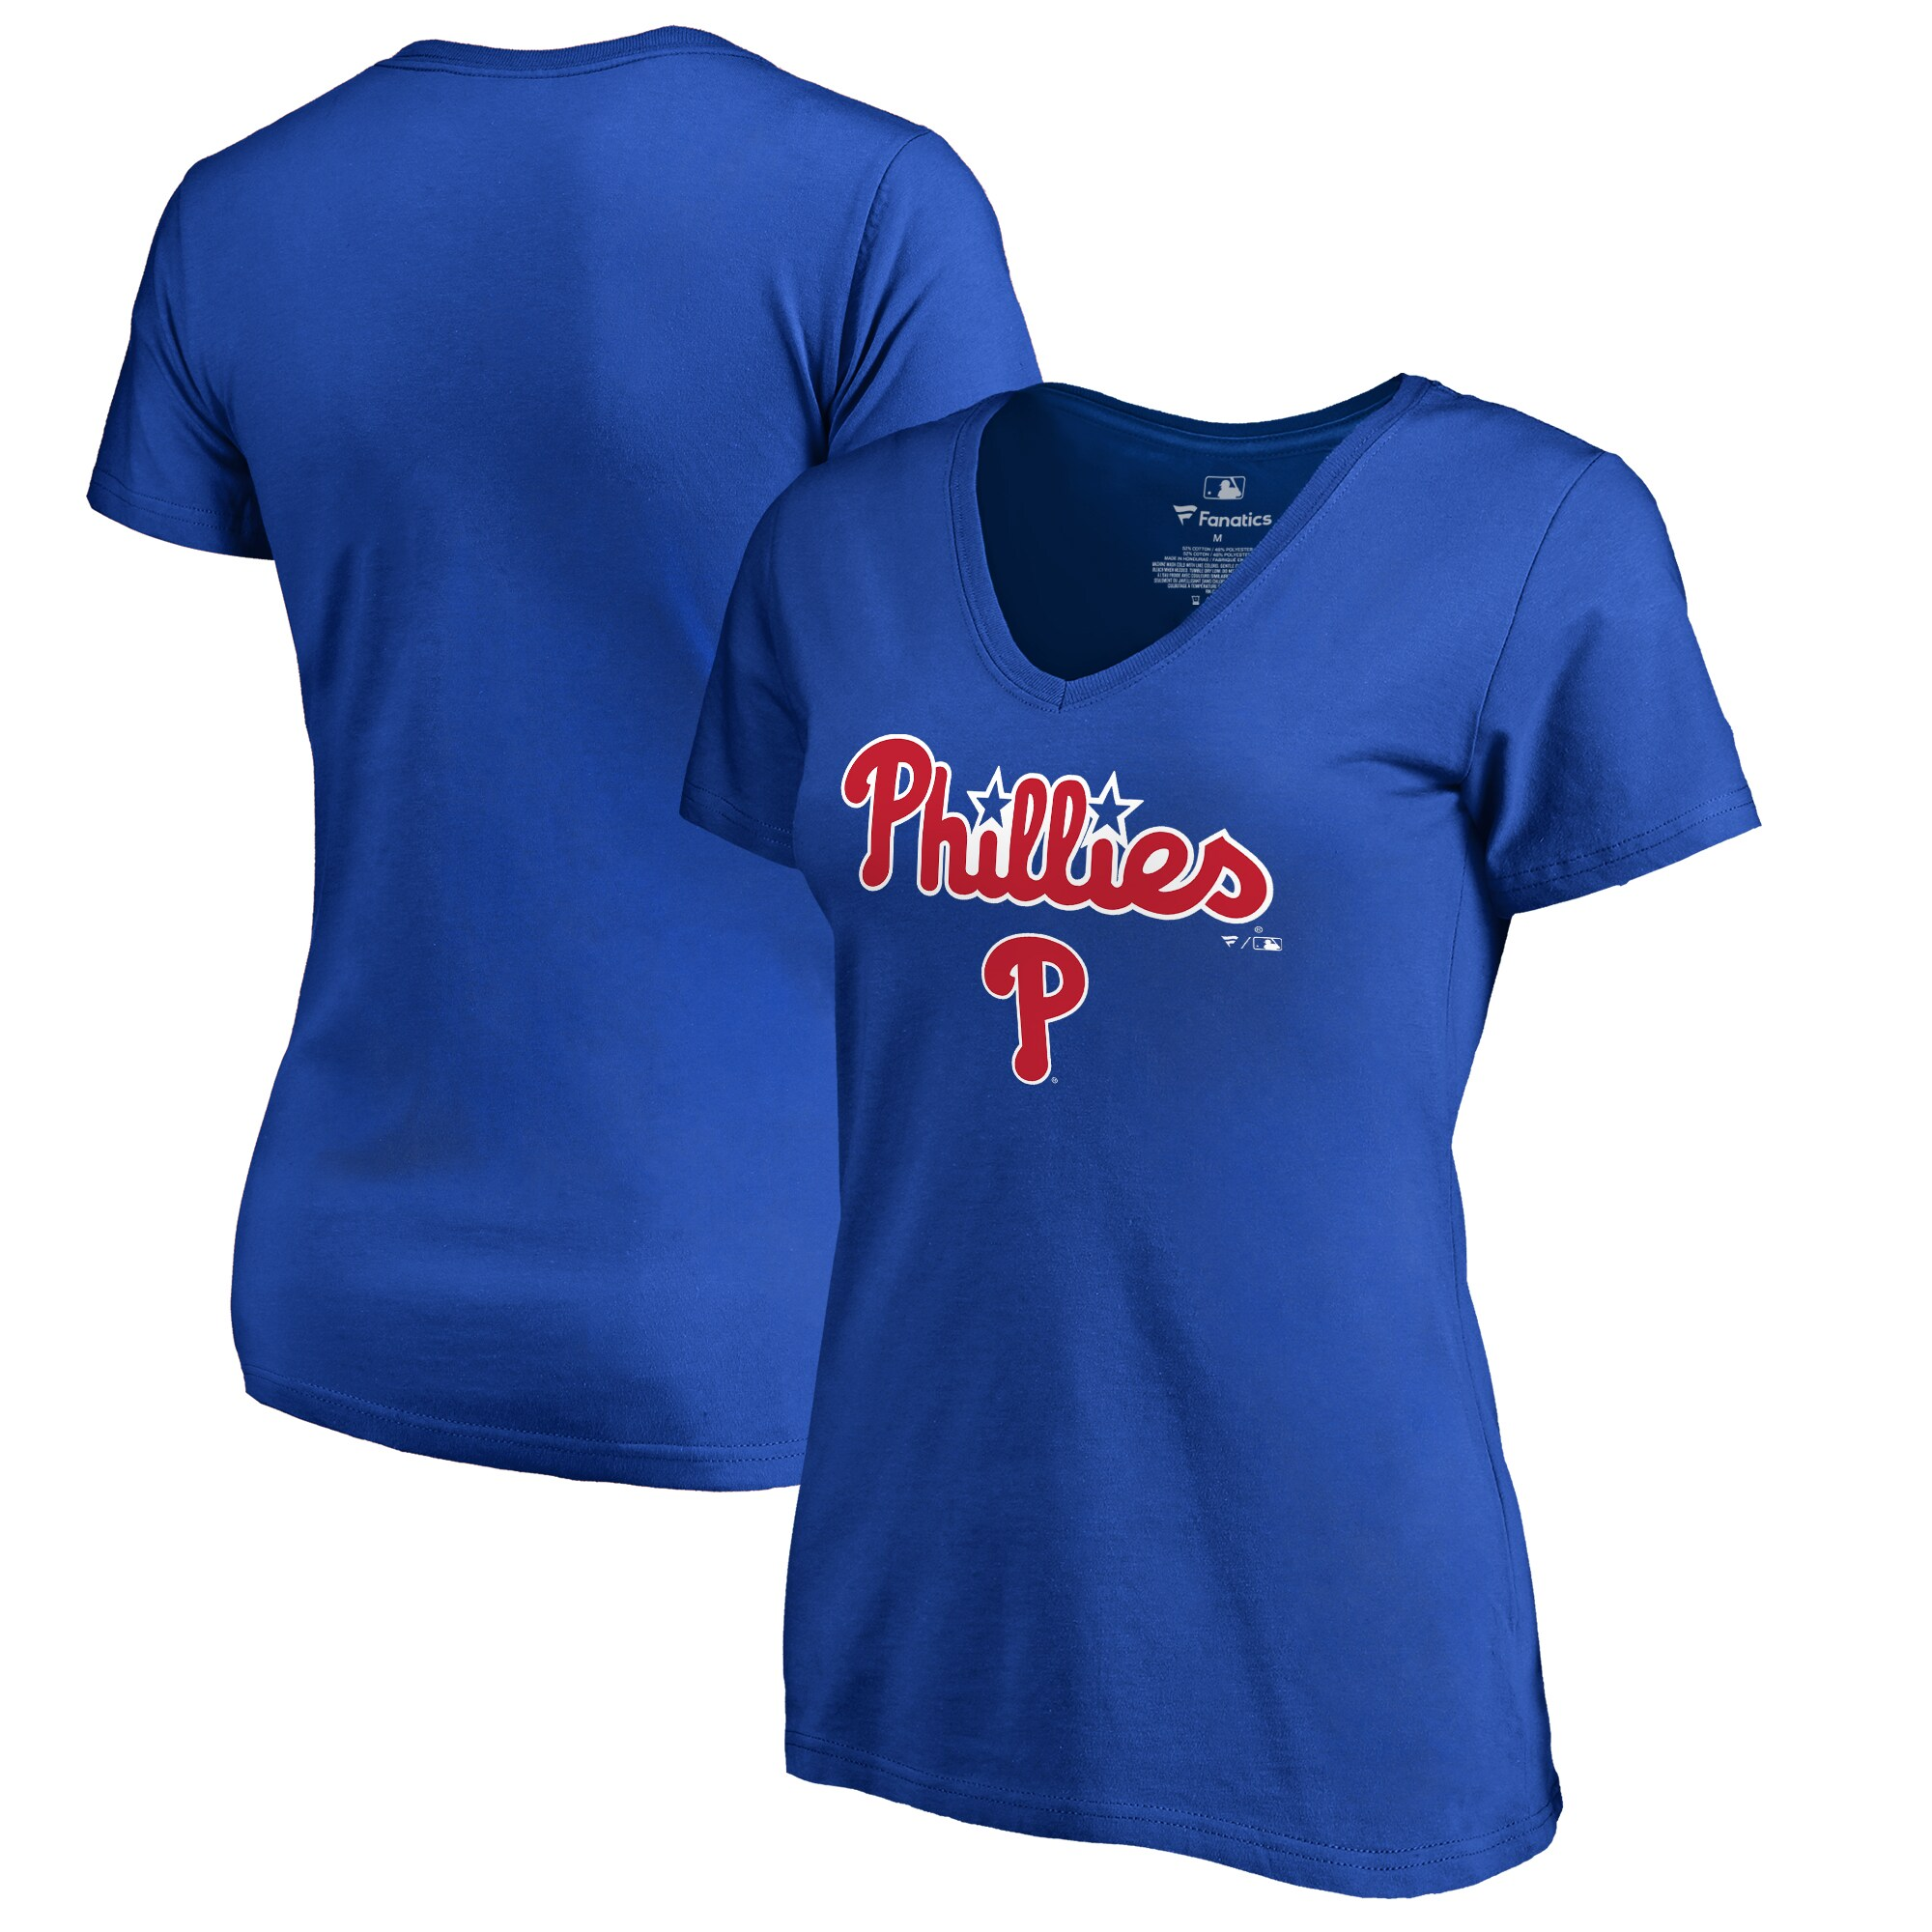 Philadelphia Phillies Fanatics Branded Women's Team Lockup T-Shirt - Royal